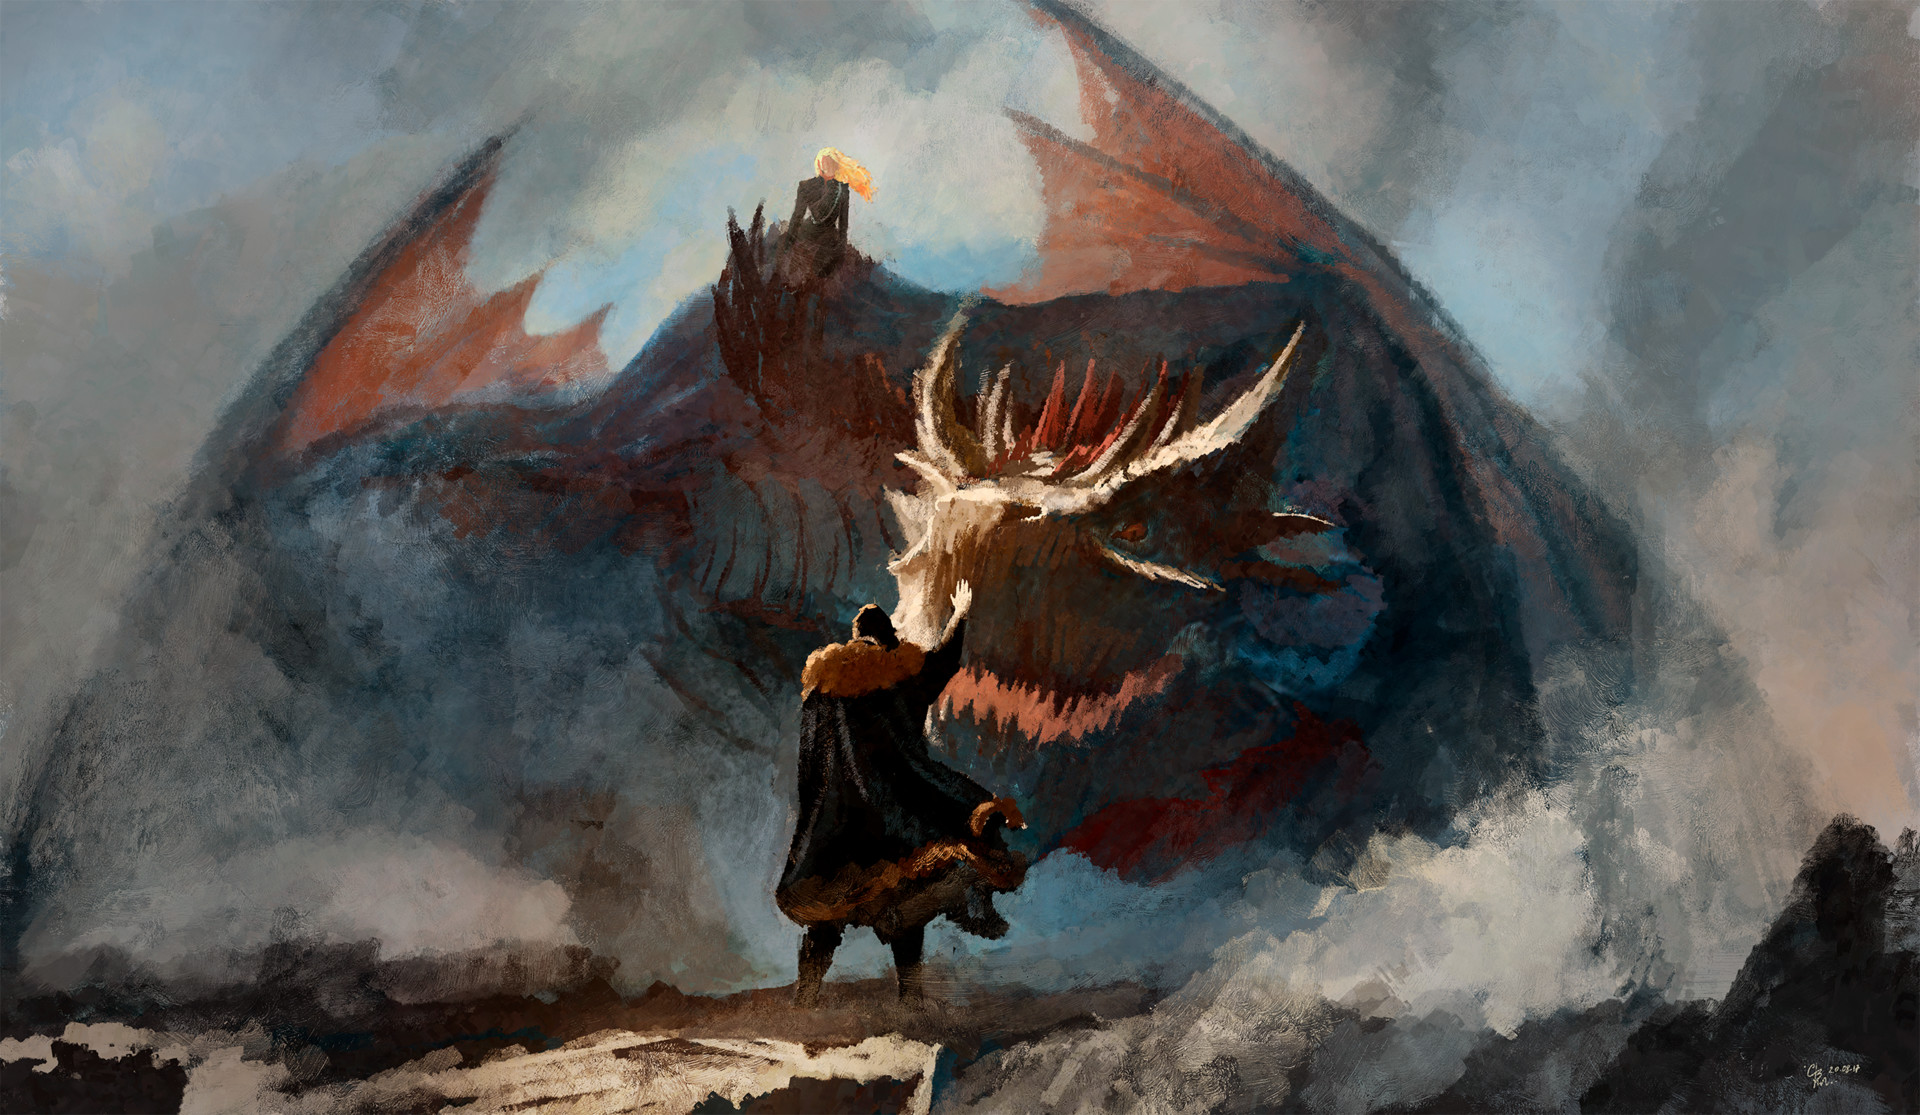 Game of Thrones Jon Snow and Dragon